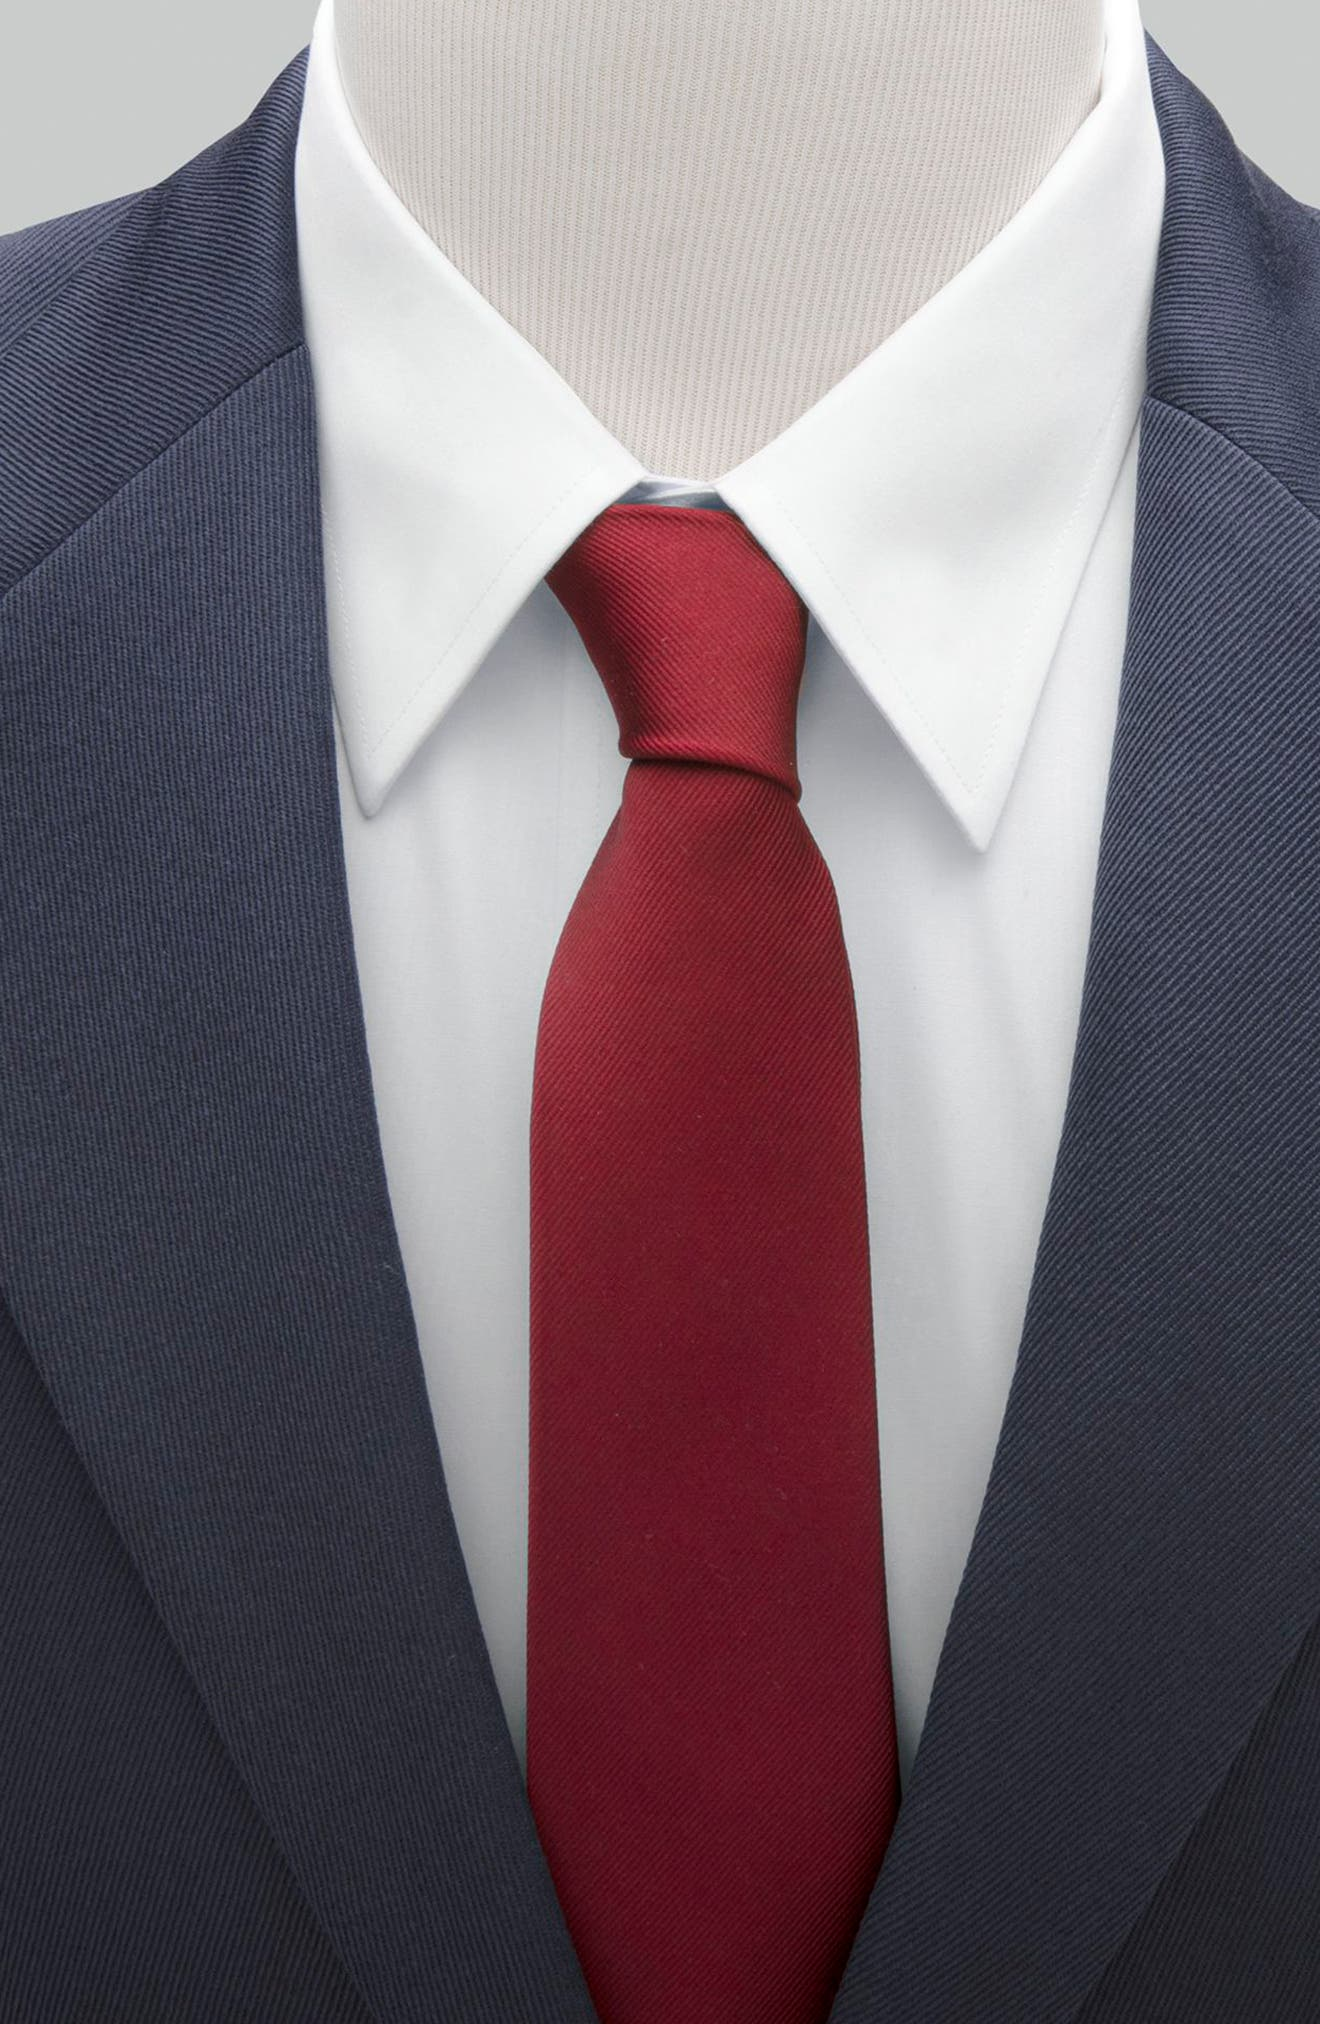 Game of Thrones Lannister Silk Tie,                             Alternate thumbnail 2, color,                             Red